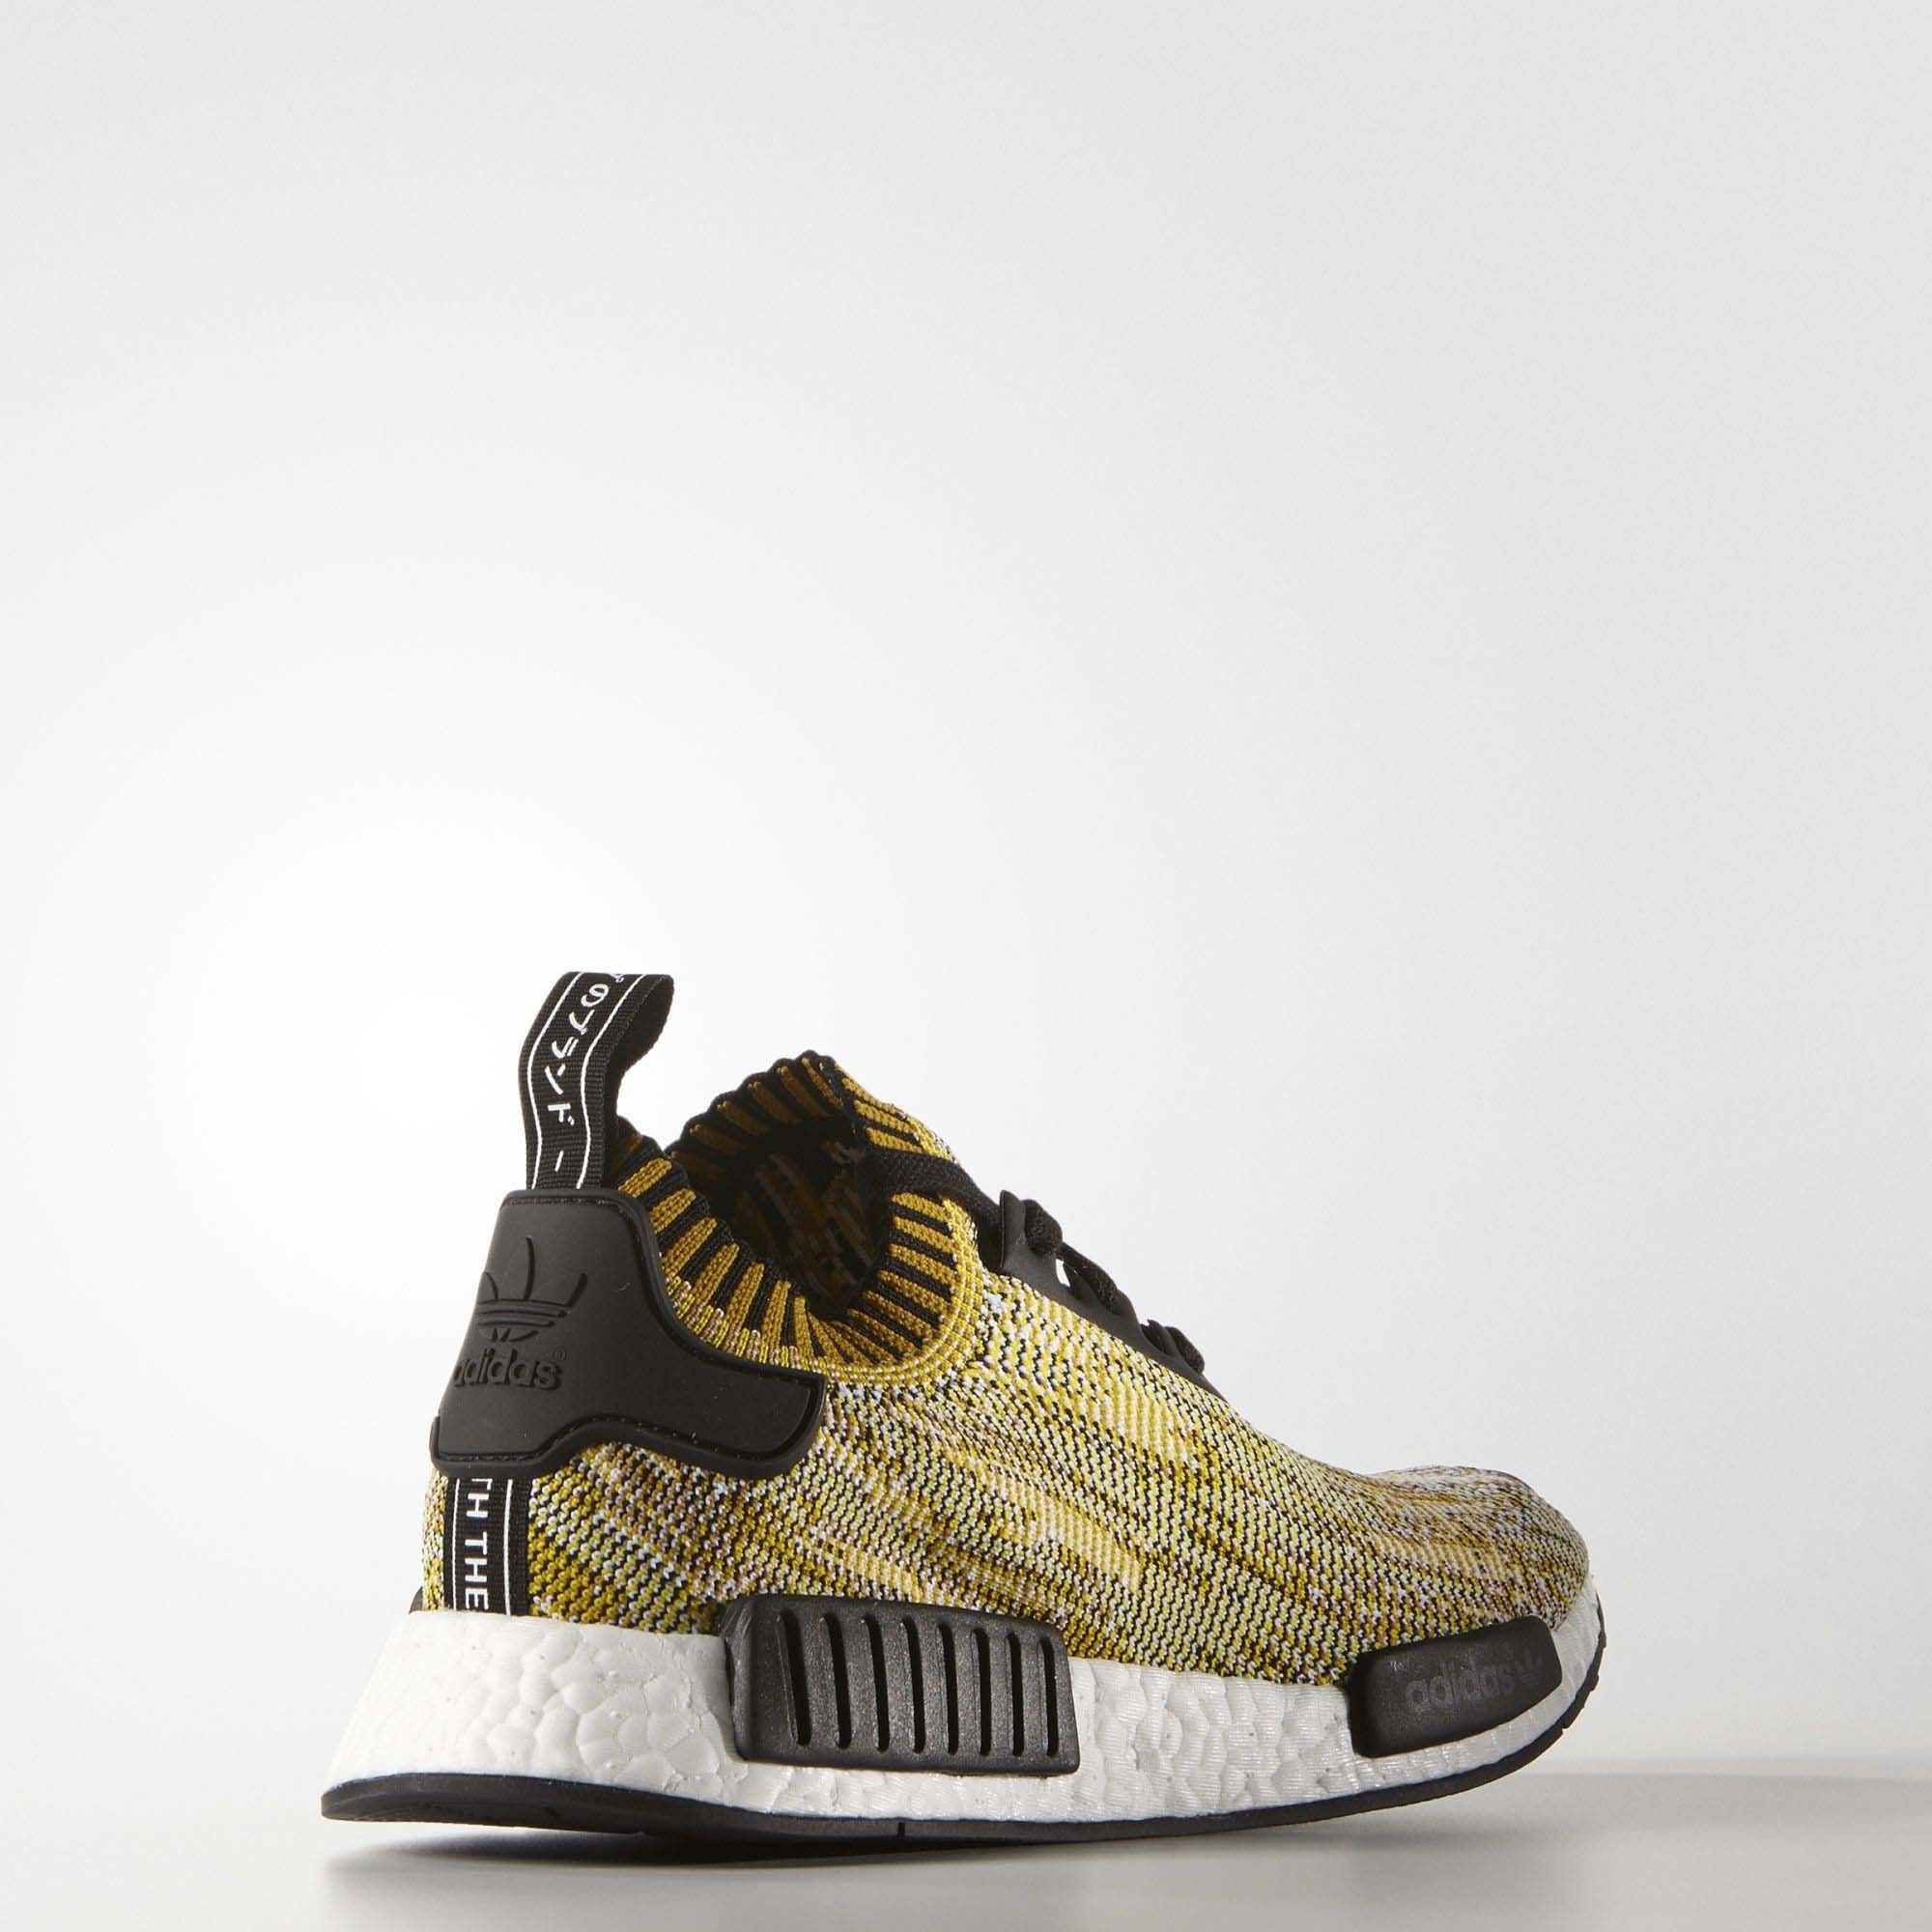 Adidas NMD_R1 Primeknit Yellow Camo Mens Core BlackCore